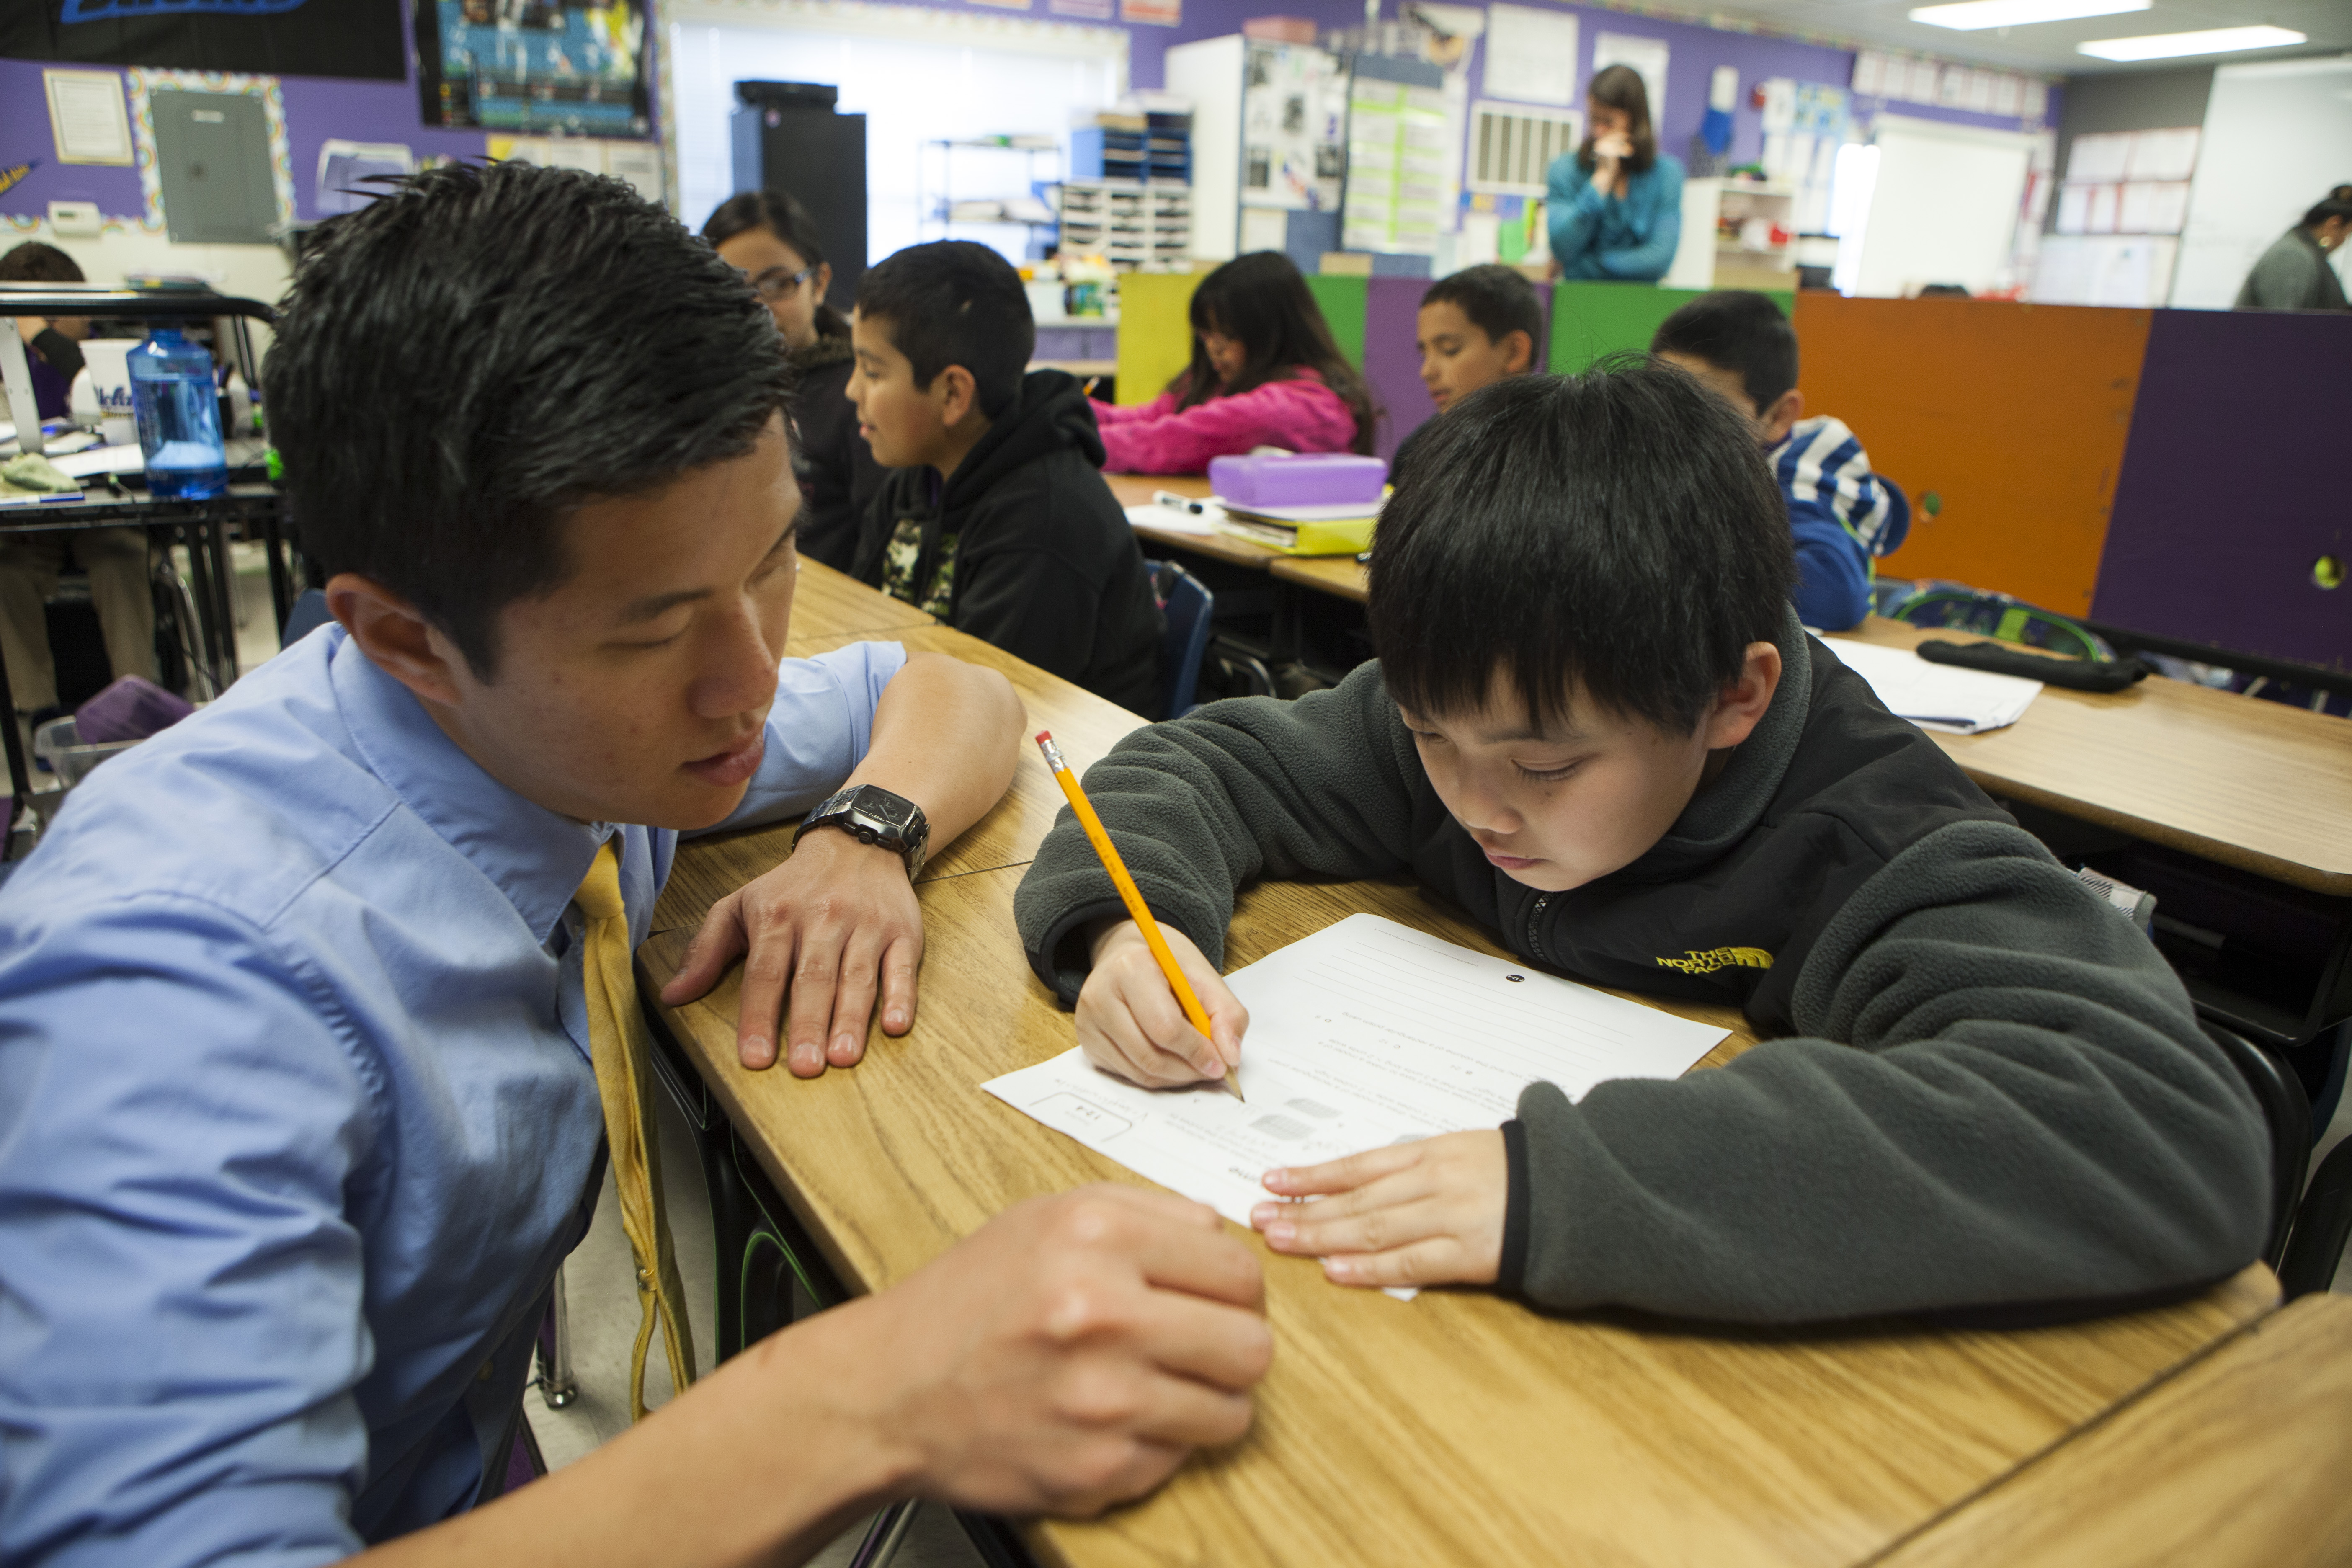 Fifth grade science and math teacher Stephen Pham helps a student at Rocketship SI Se Puede, a charter, public elementary school, on Feb. 18, 2014 in San Jose, California.